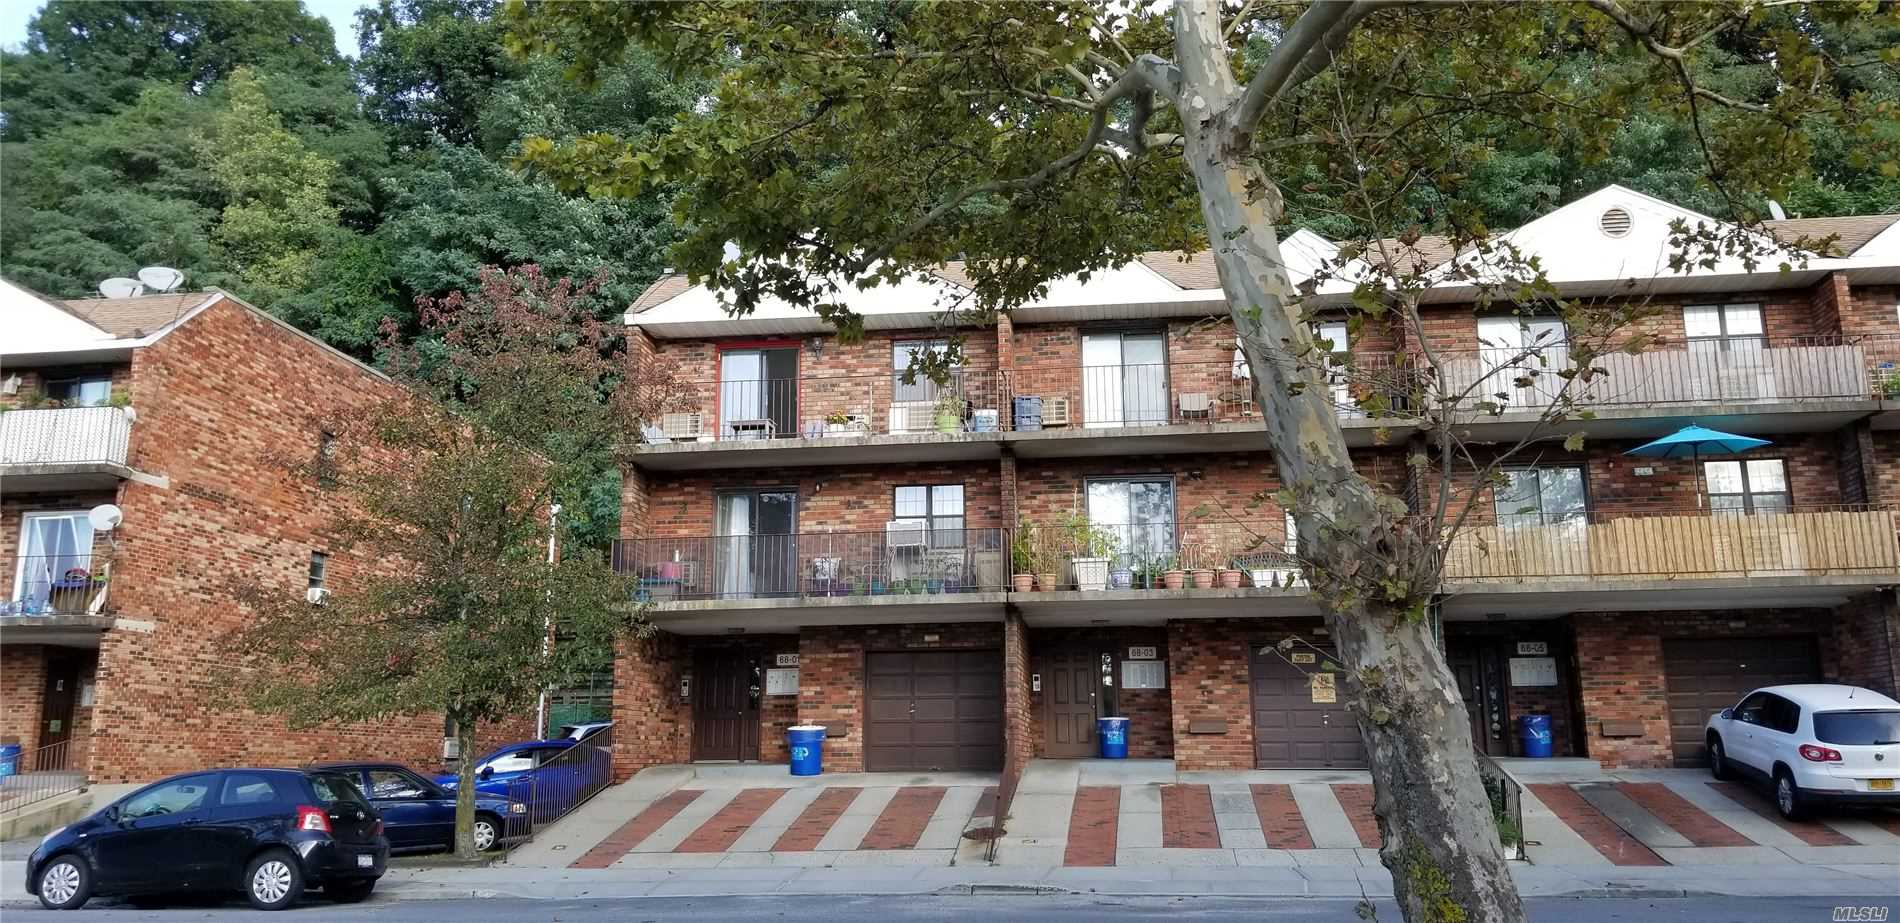 Photo of home for sale at 68-01 242 St, Douglaston NY